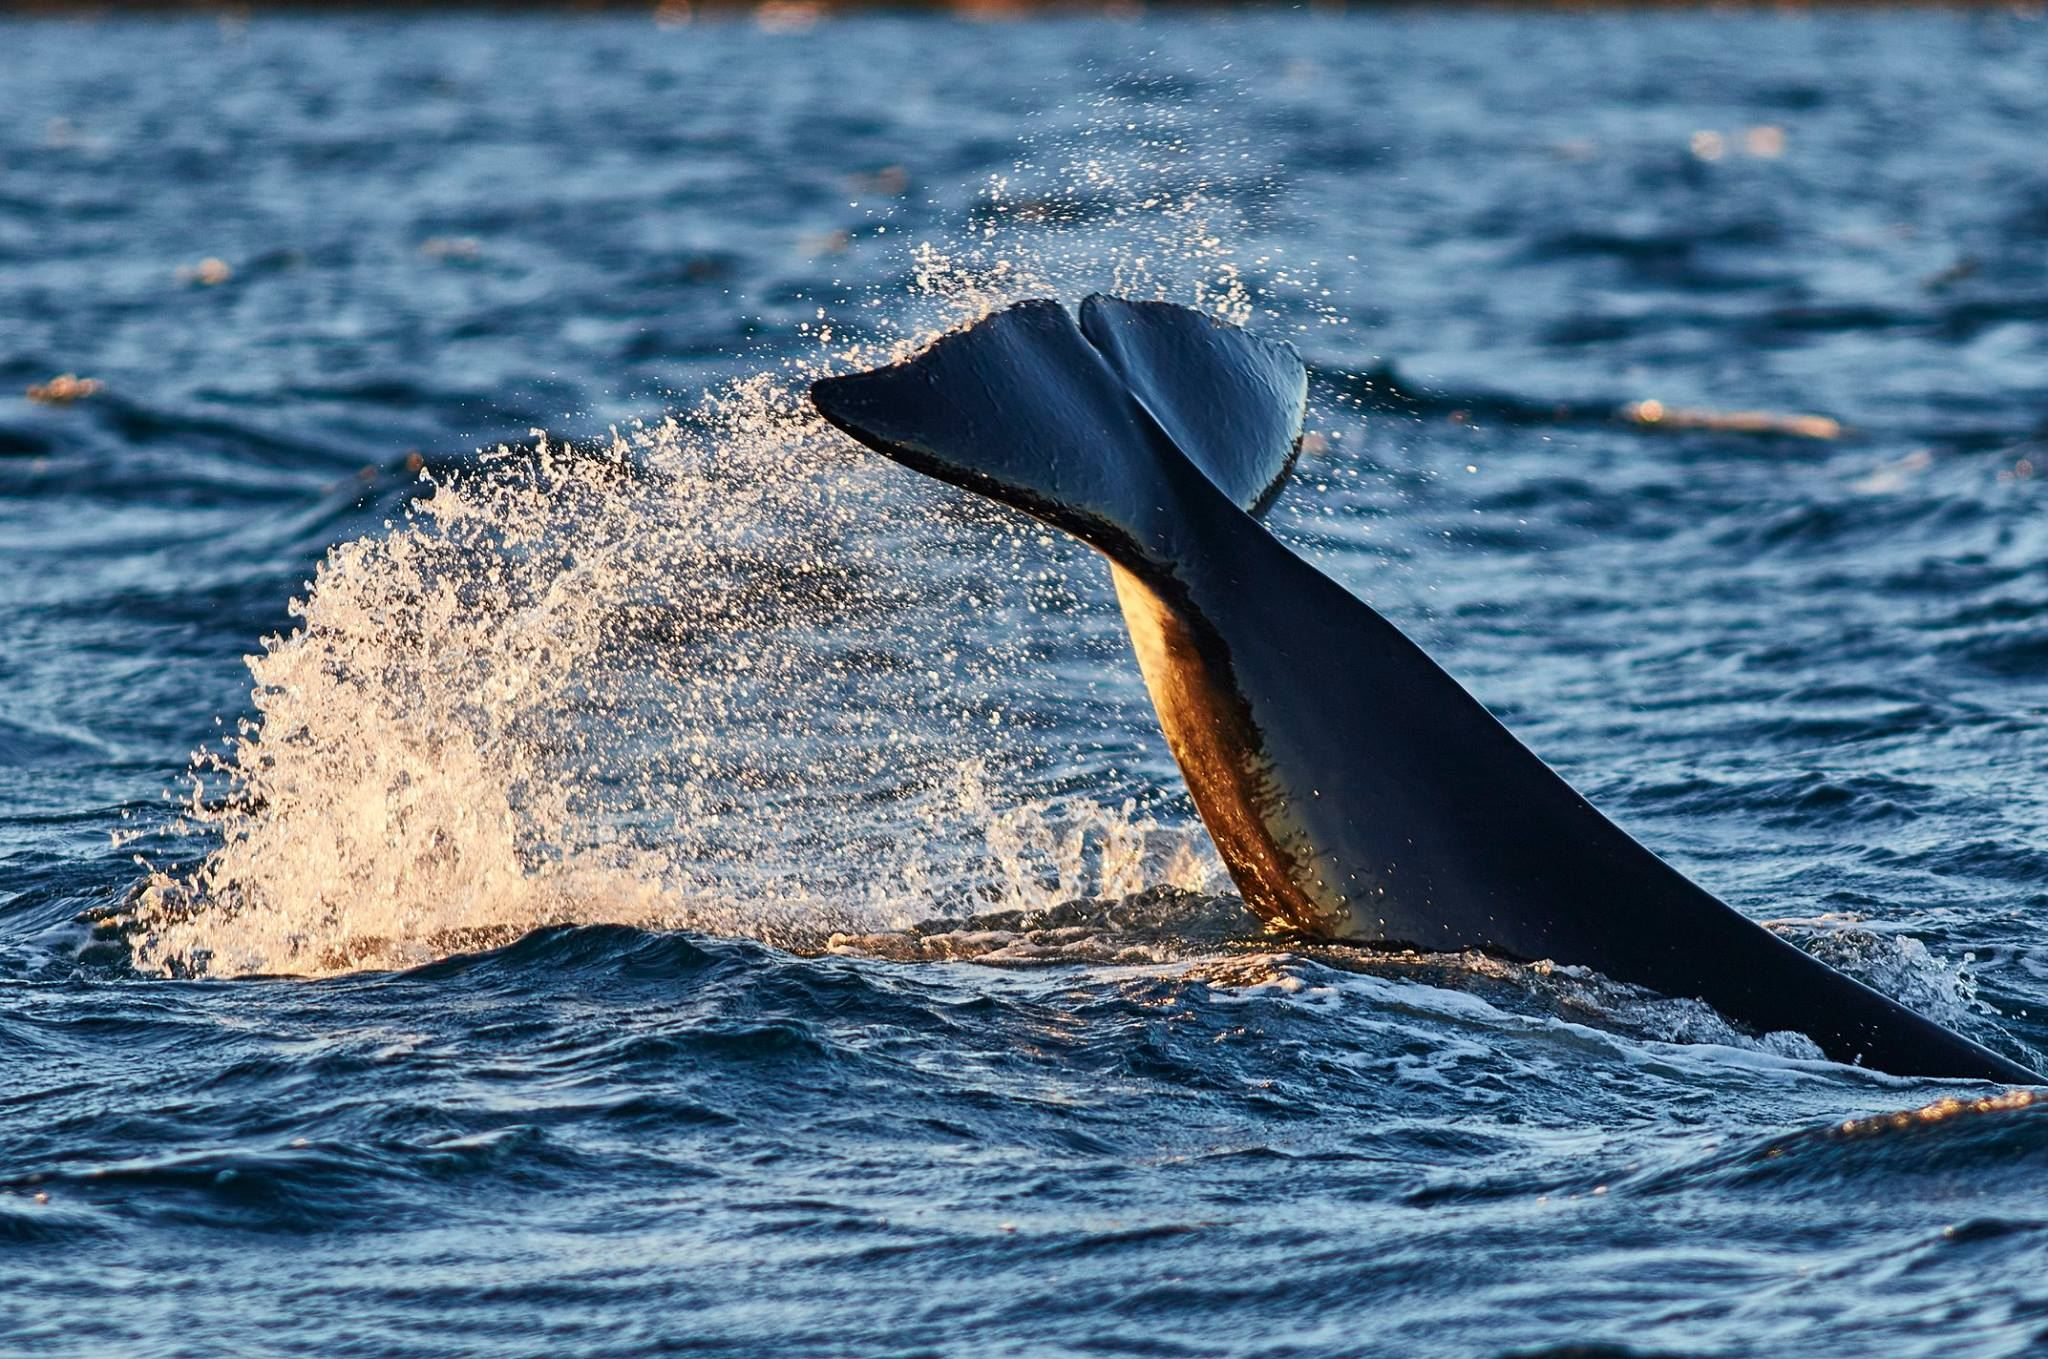 Whale watching from Skjervøy - Green Gold of Norway